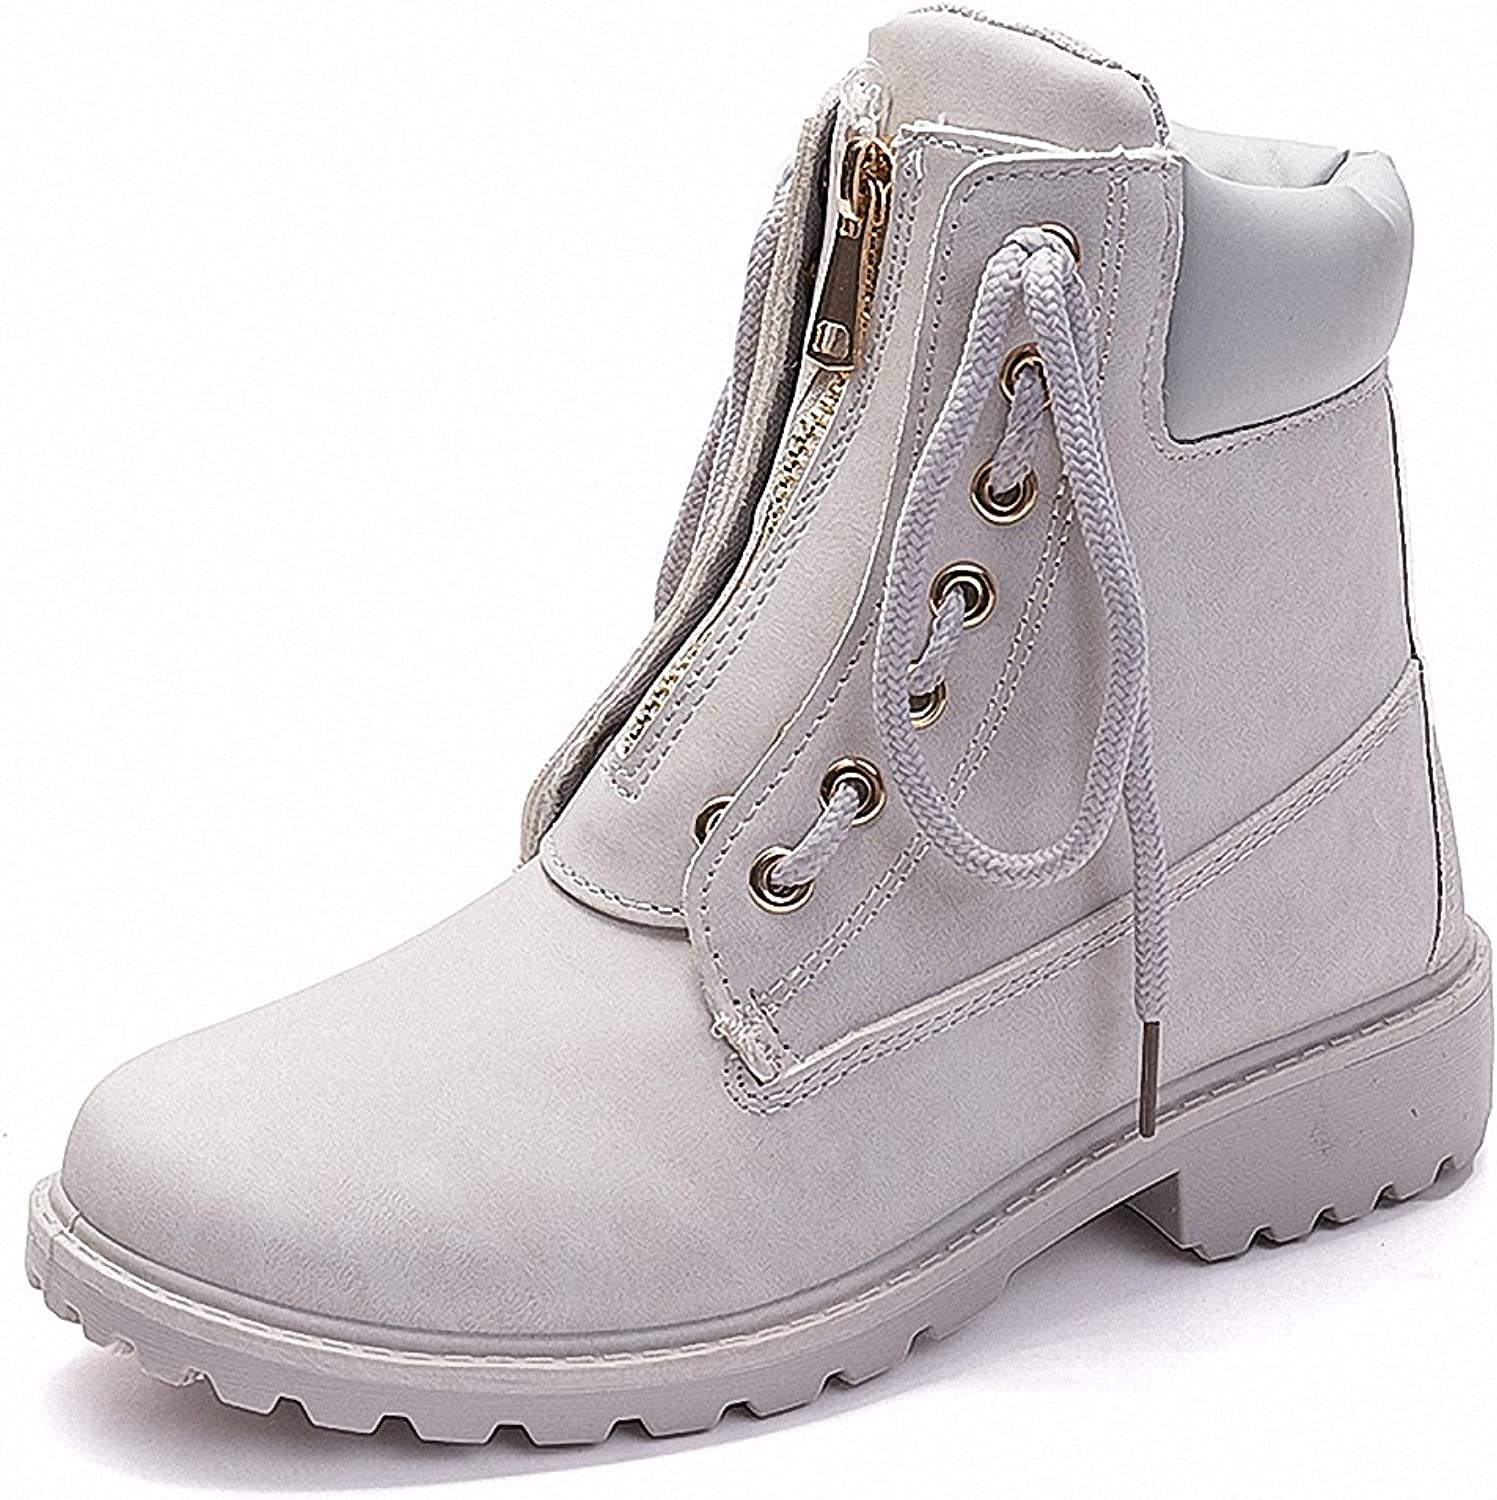 ZHENZHONG Women's Lace up Zipped Winter Ankle Boots Snow Short Combat Booties